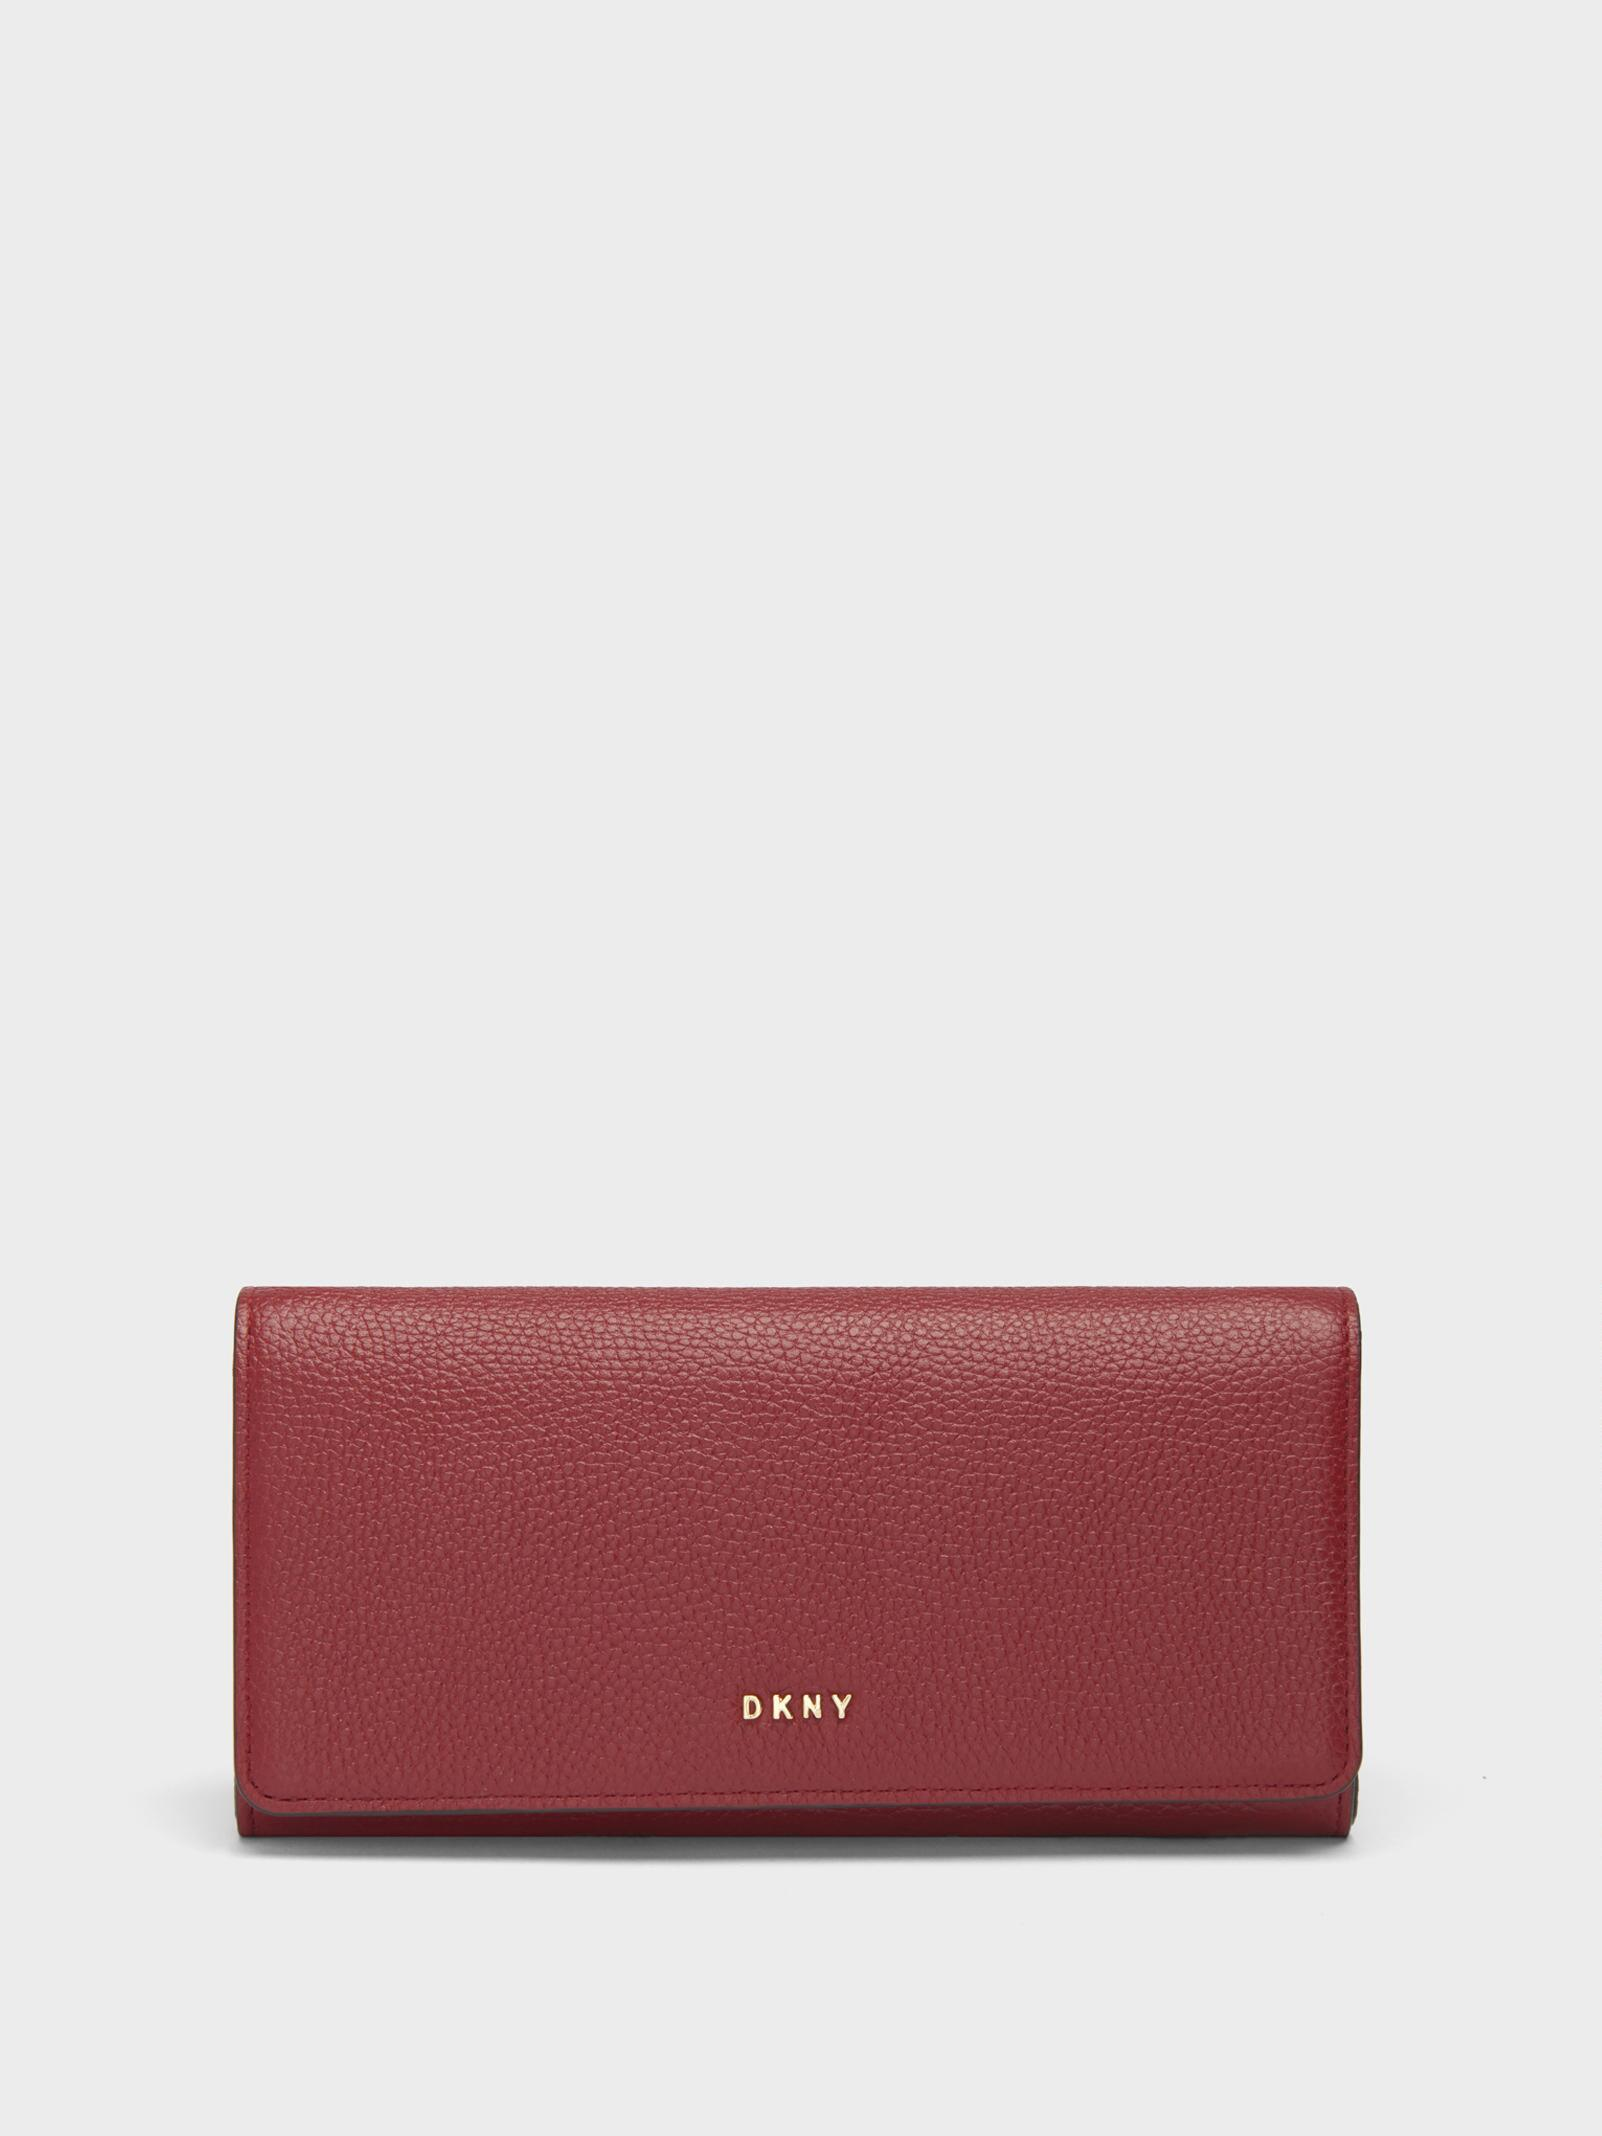 Affordable Cheap Online DKNY Pebbled large carryall wallet Lowest Price Cheap Online Buy Cheap Low Shipping Fee Genuine Free Shipping Marketable mfGRdu4JPG